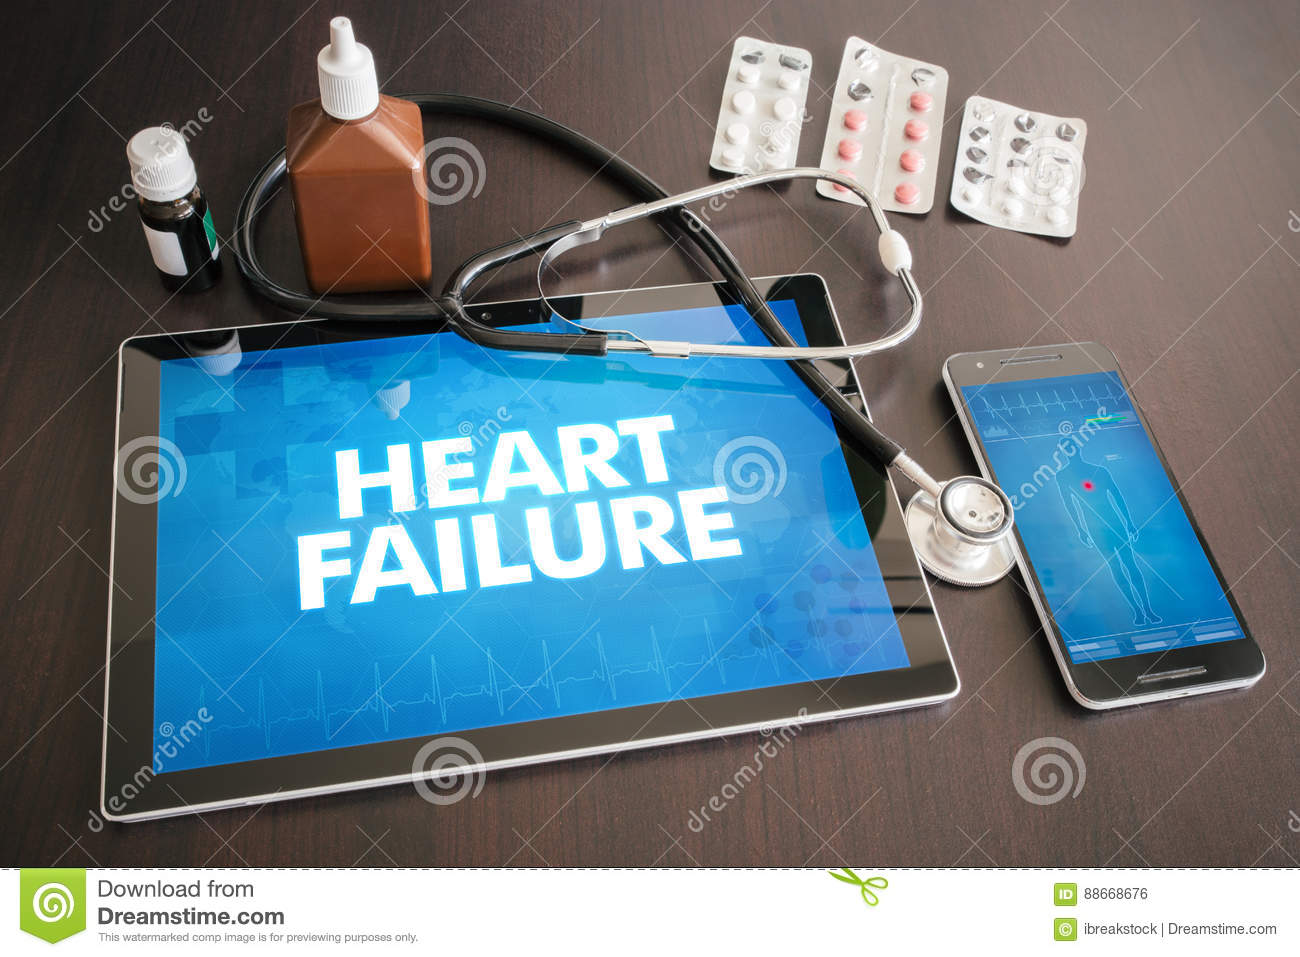 Heart failure (cardiology related) diagnosis medical concept on